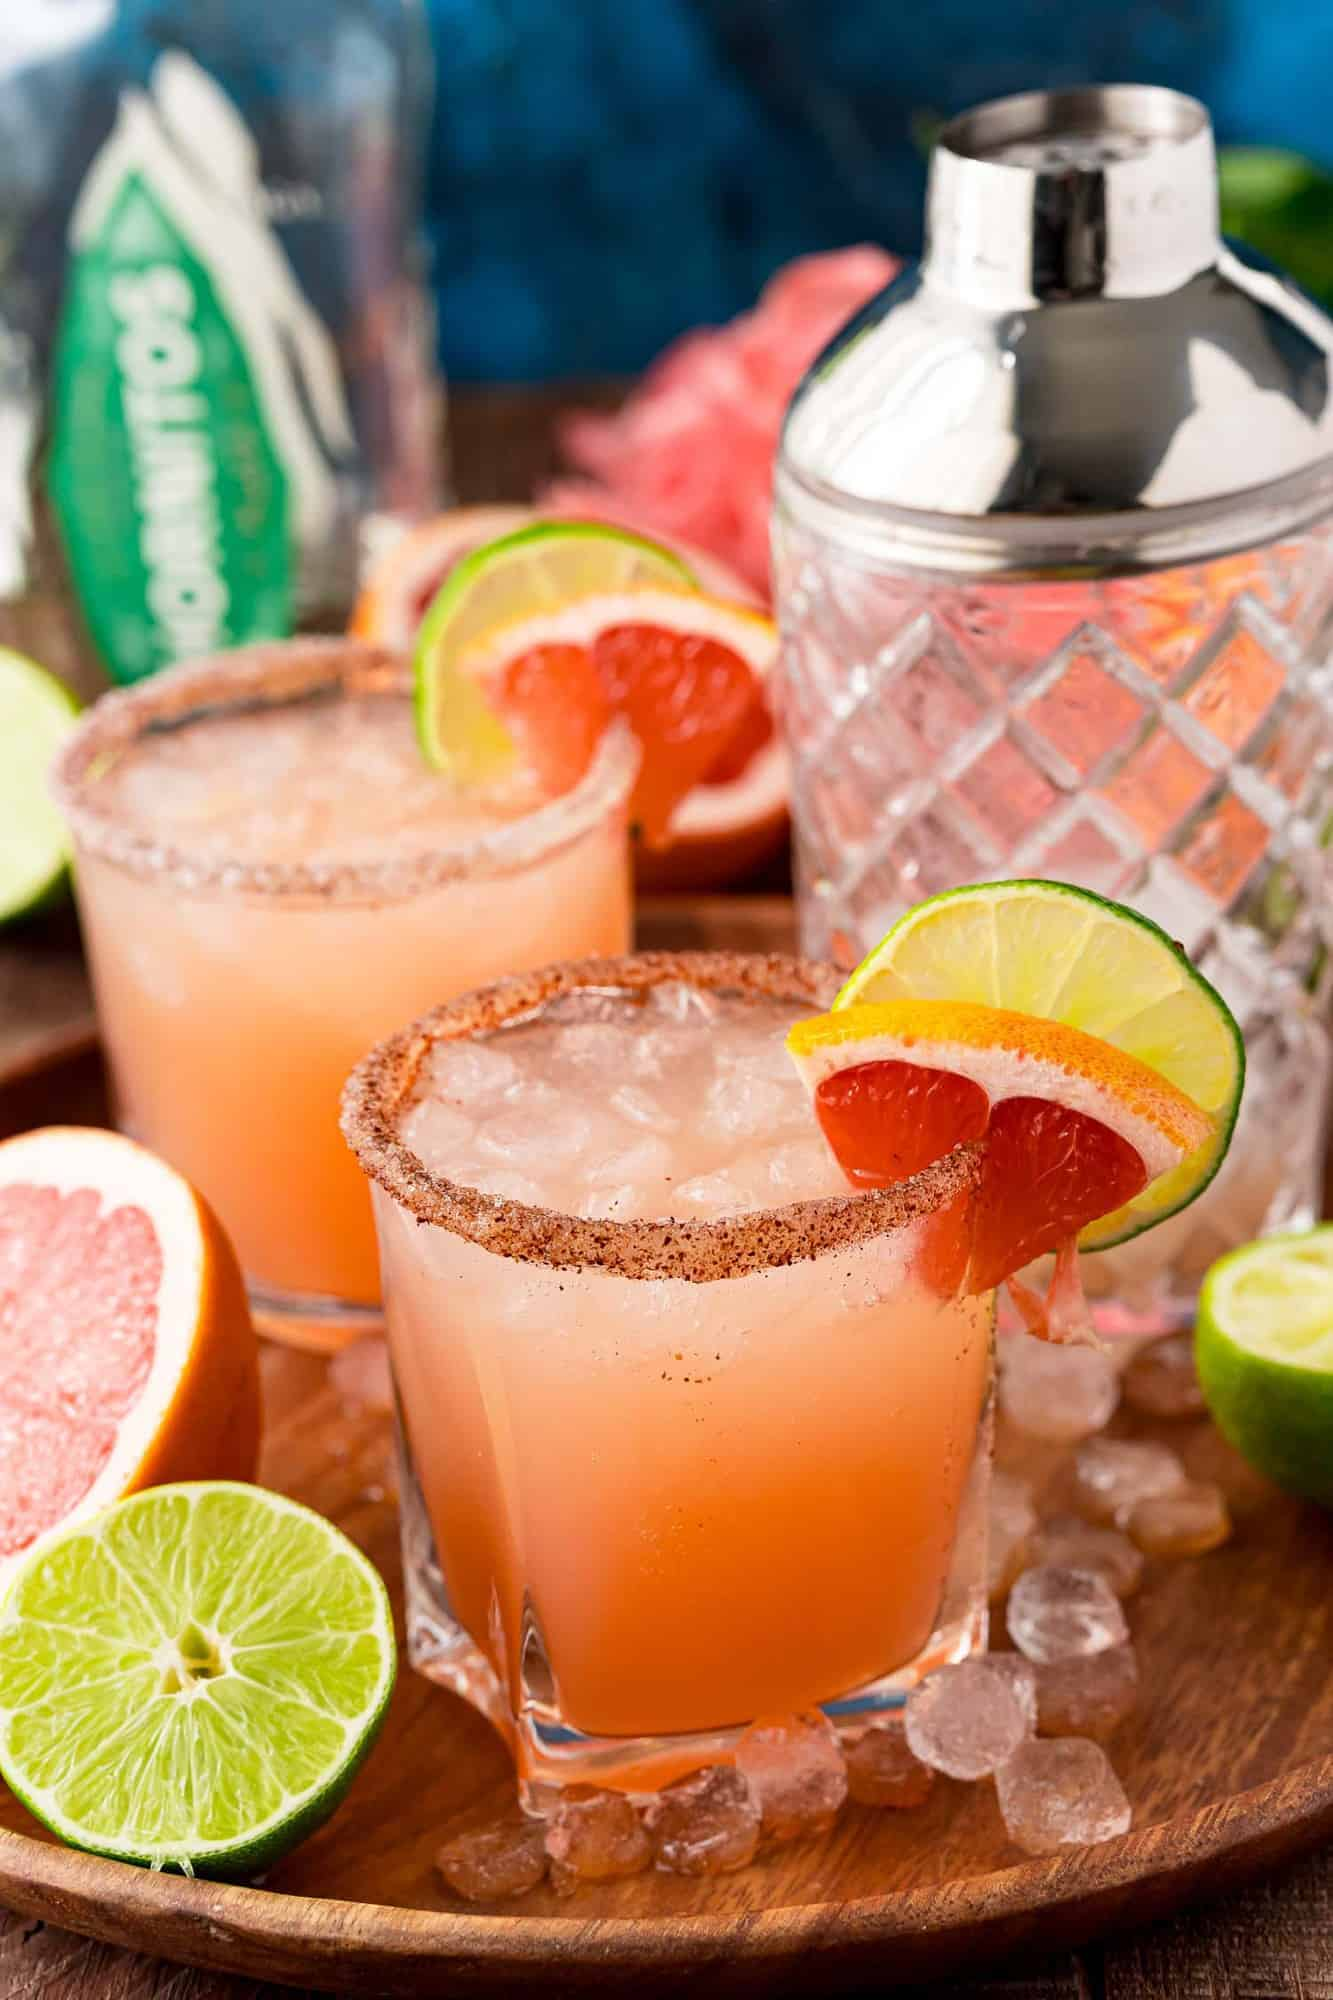 Two light pink cocktails on ice, garnished with grapefruit and lime.